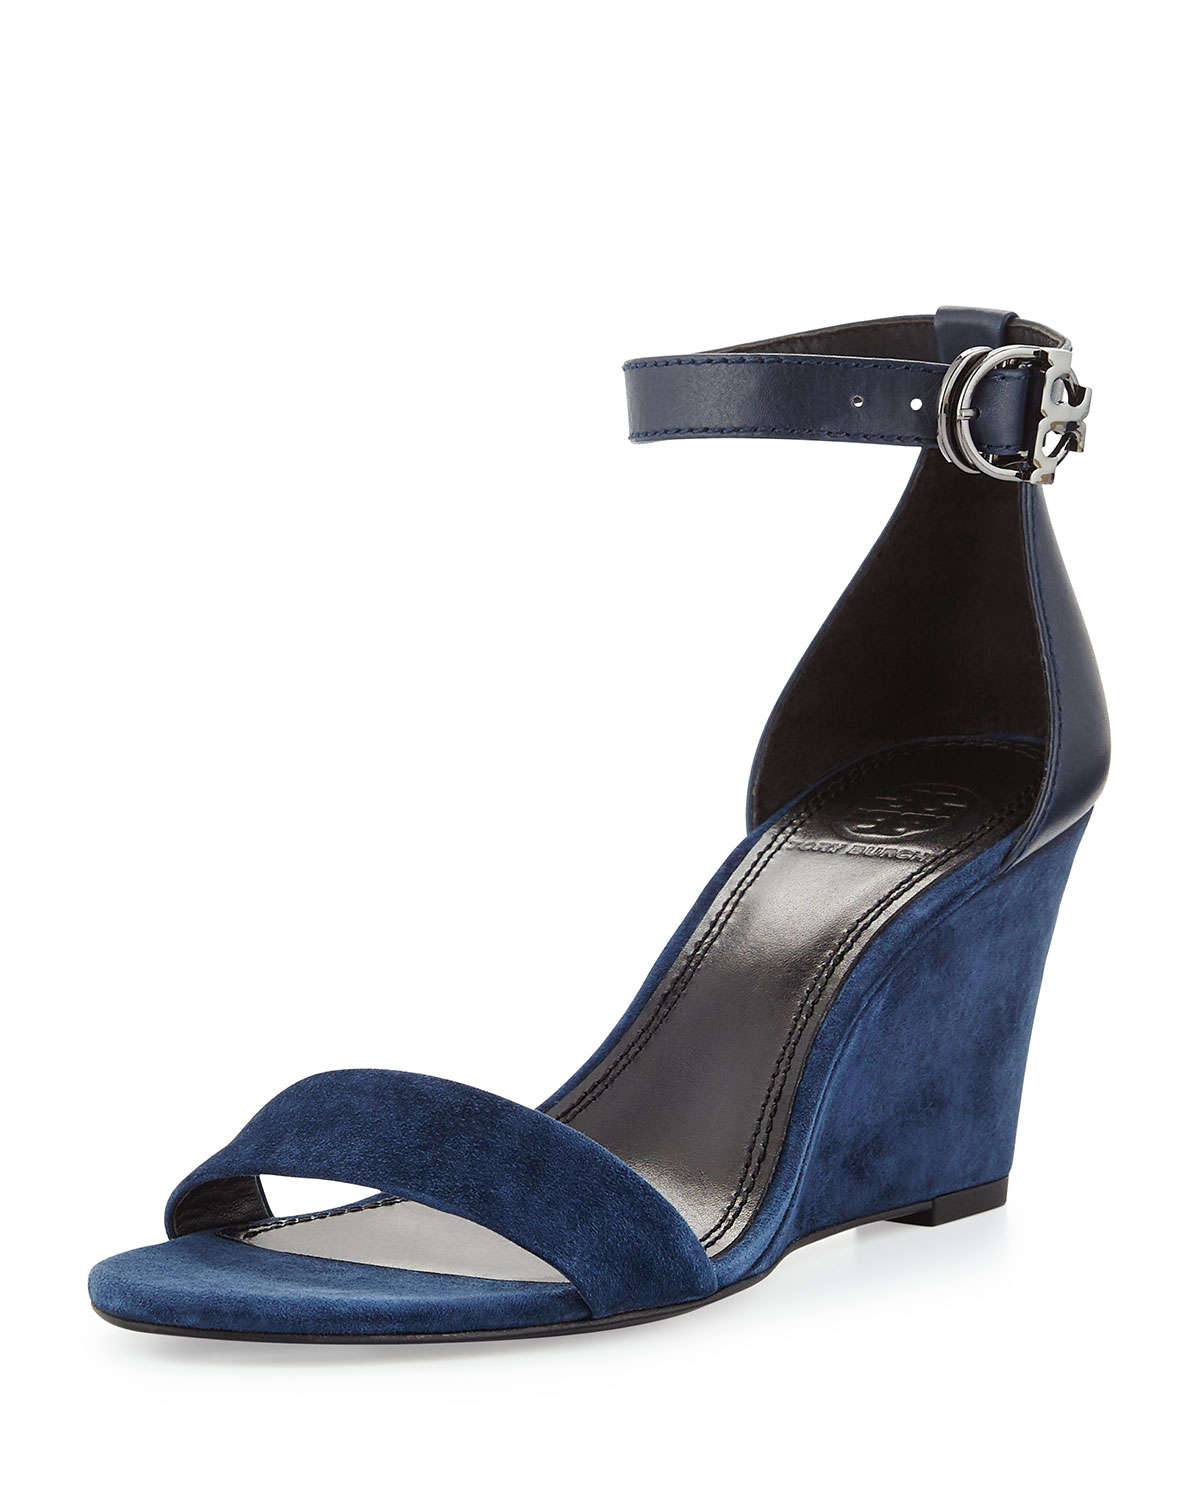 f6153c706a5 Lyst - Tory Burch Thames Suede Wedge Sandal in Blue